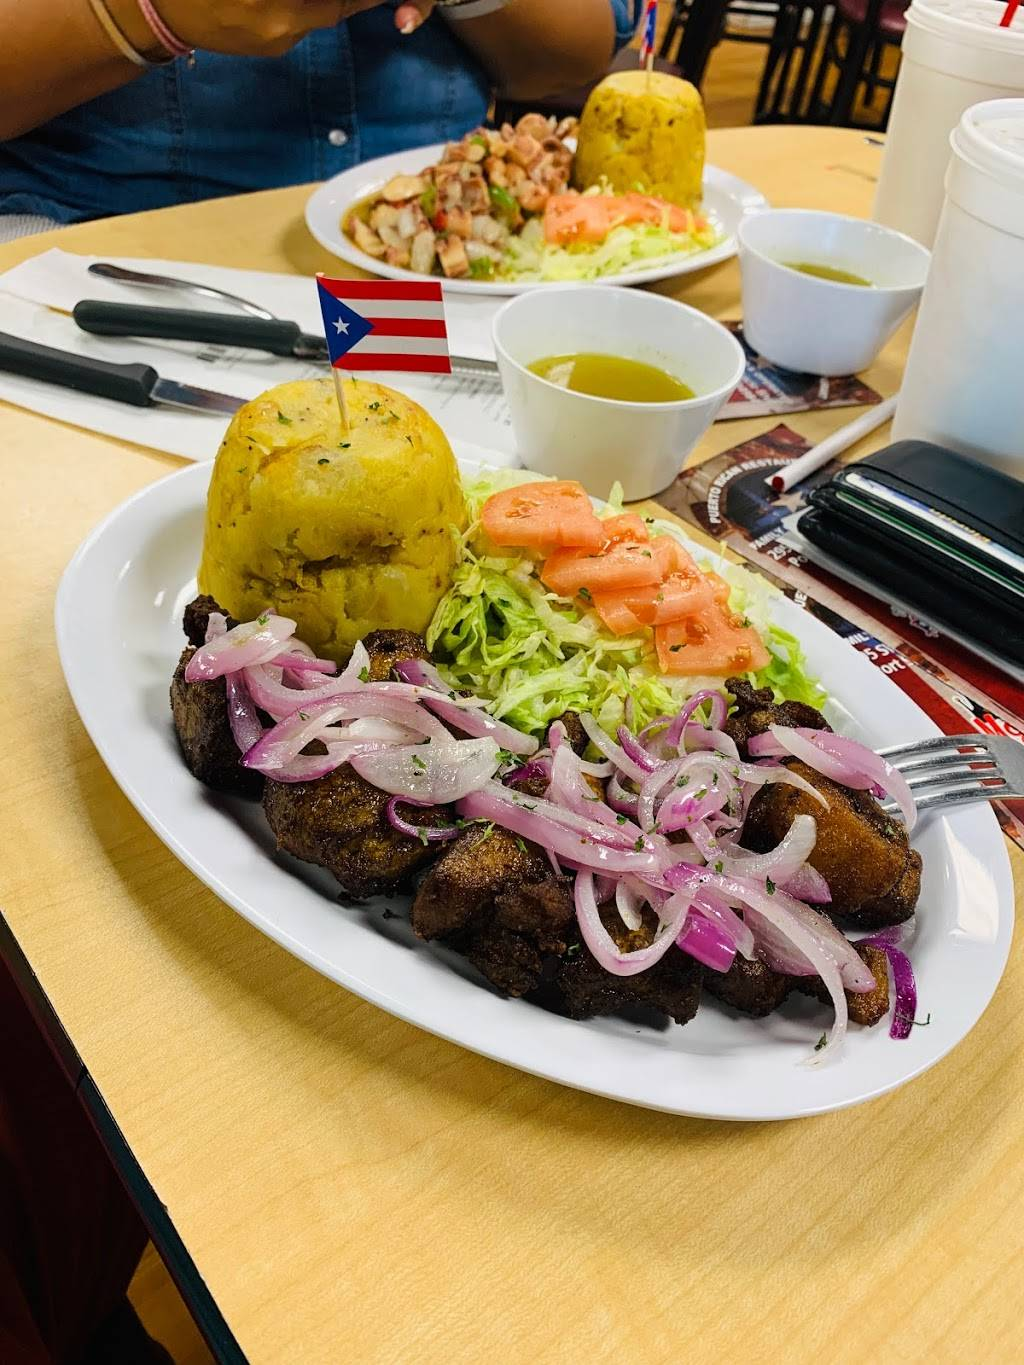 The Mofongo King | restaurant | 295 SW Port St Lucie Blvd, Port St. Lucie, FL 34984, USA | 7727774080 OR +1 772-777-4080